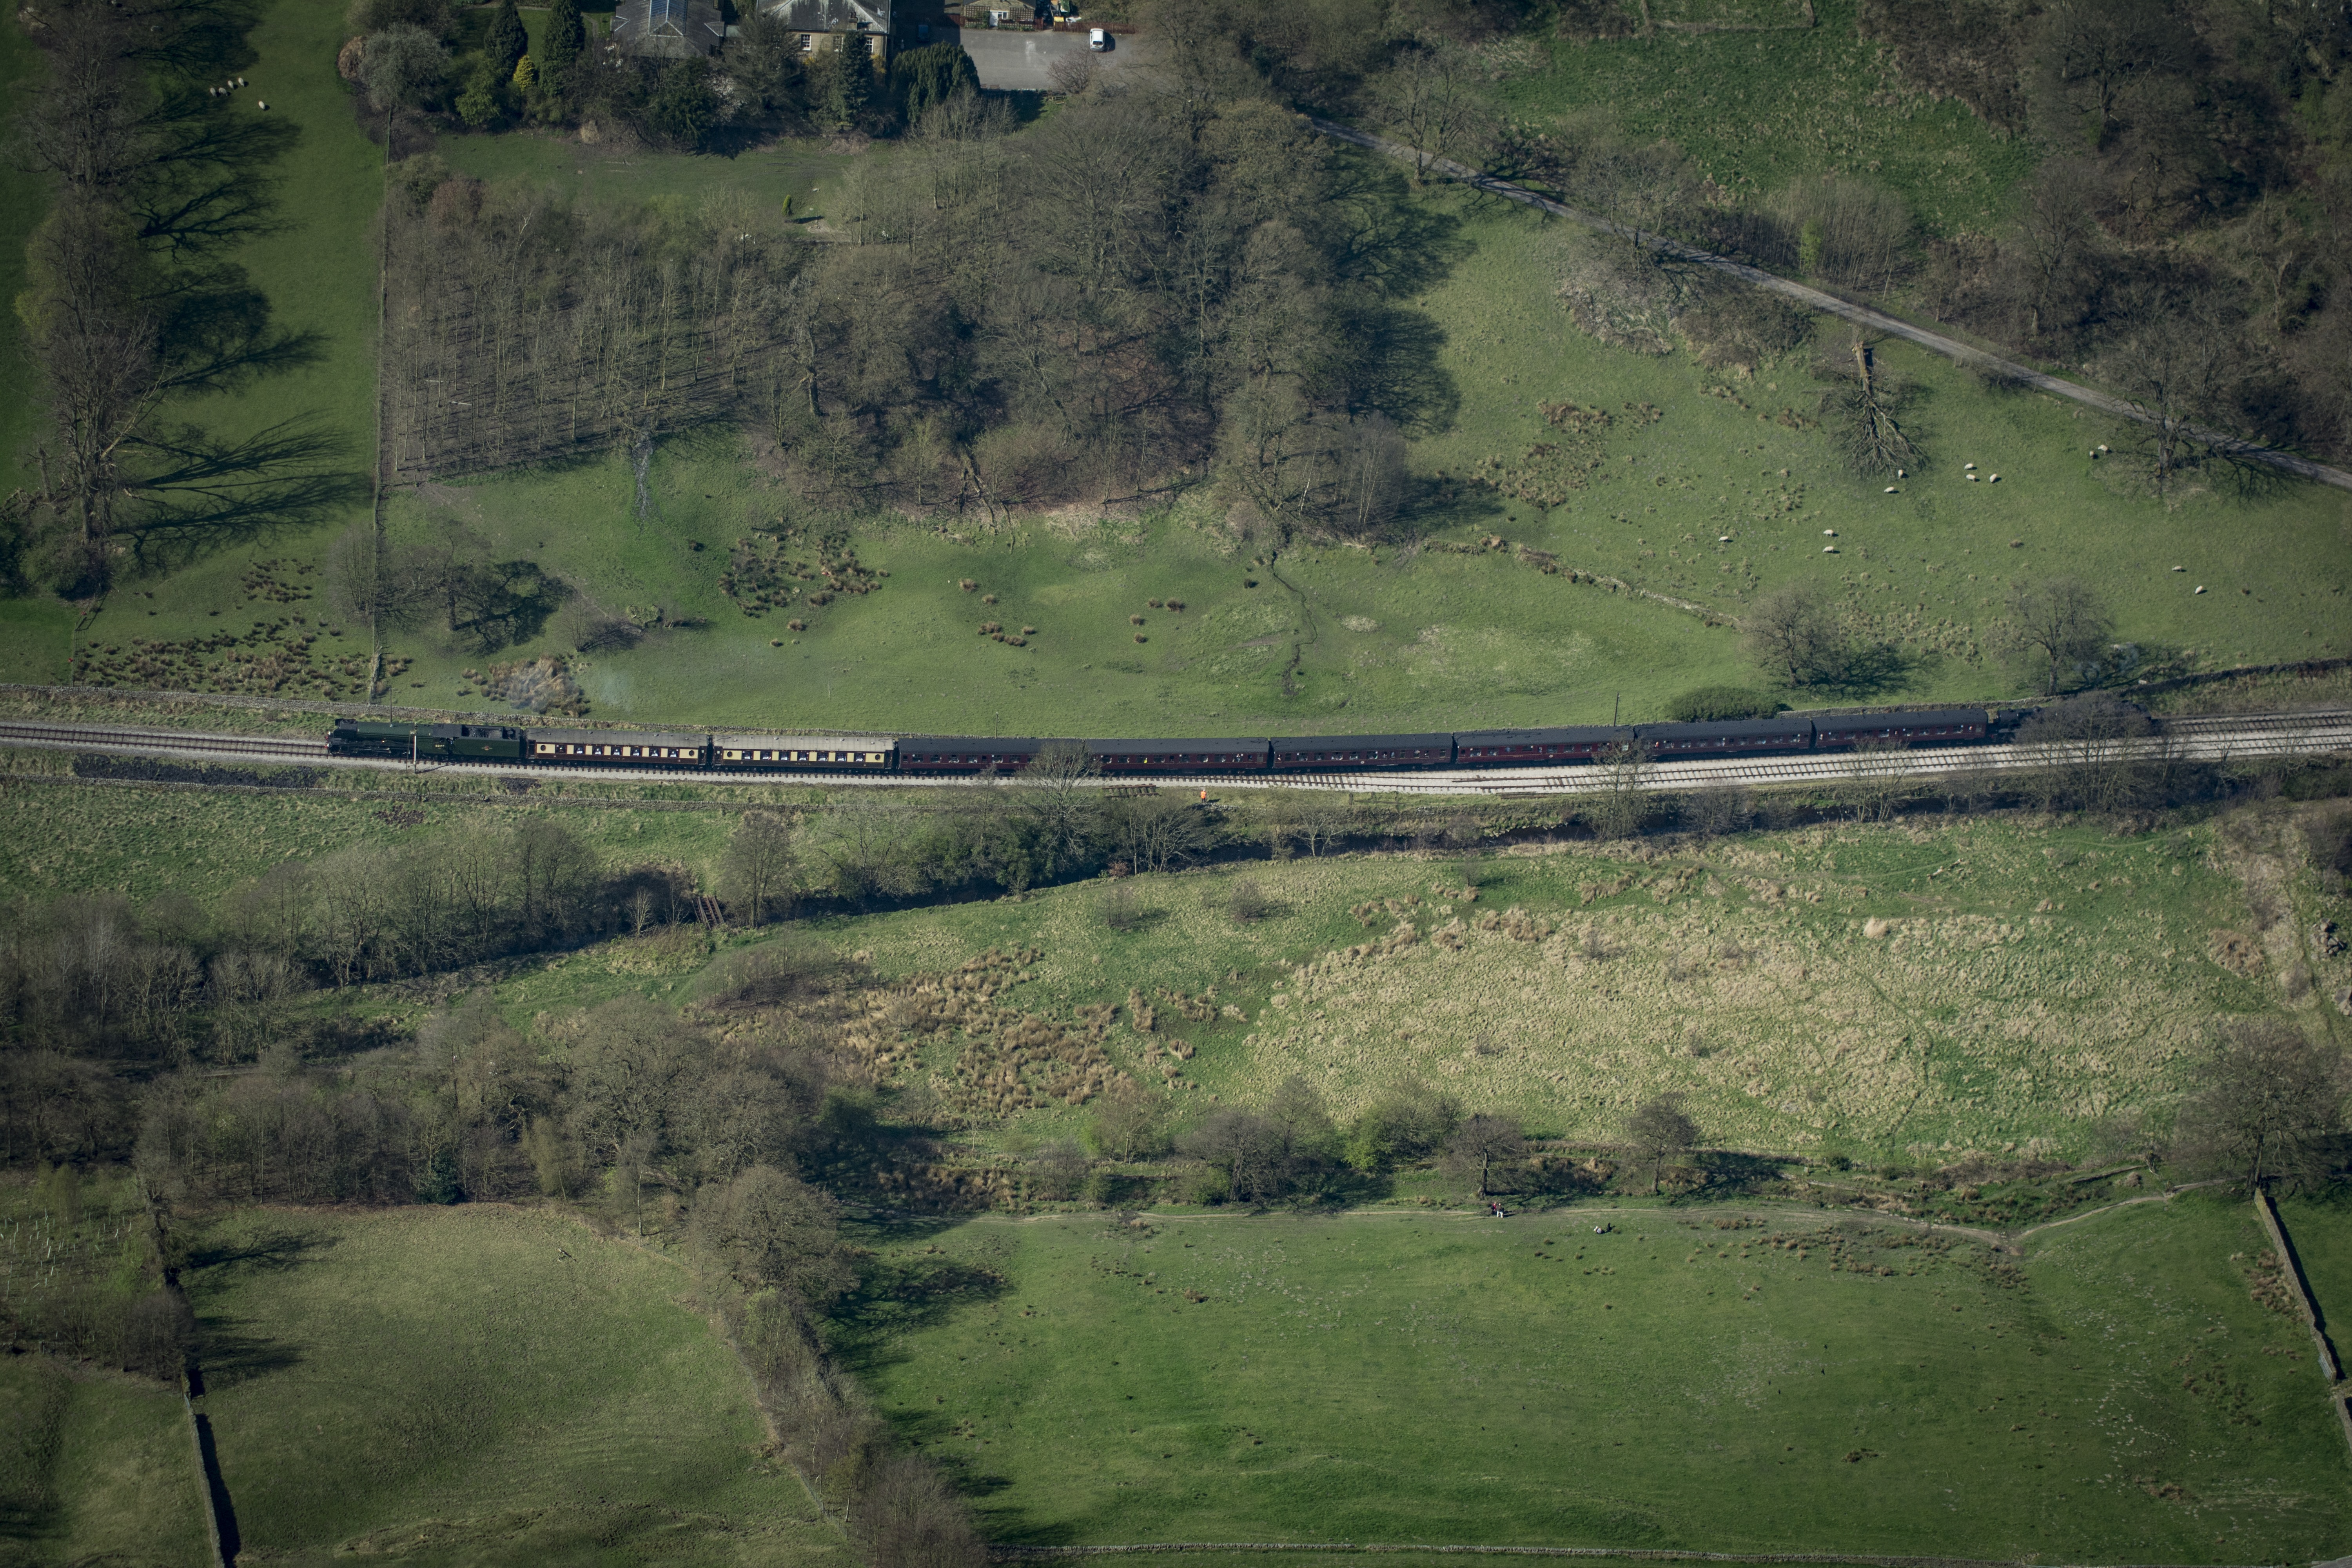 An aerial view of a train moving through a green plain